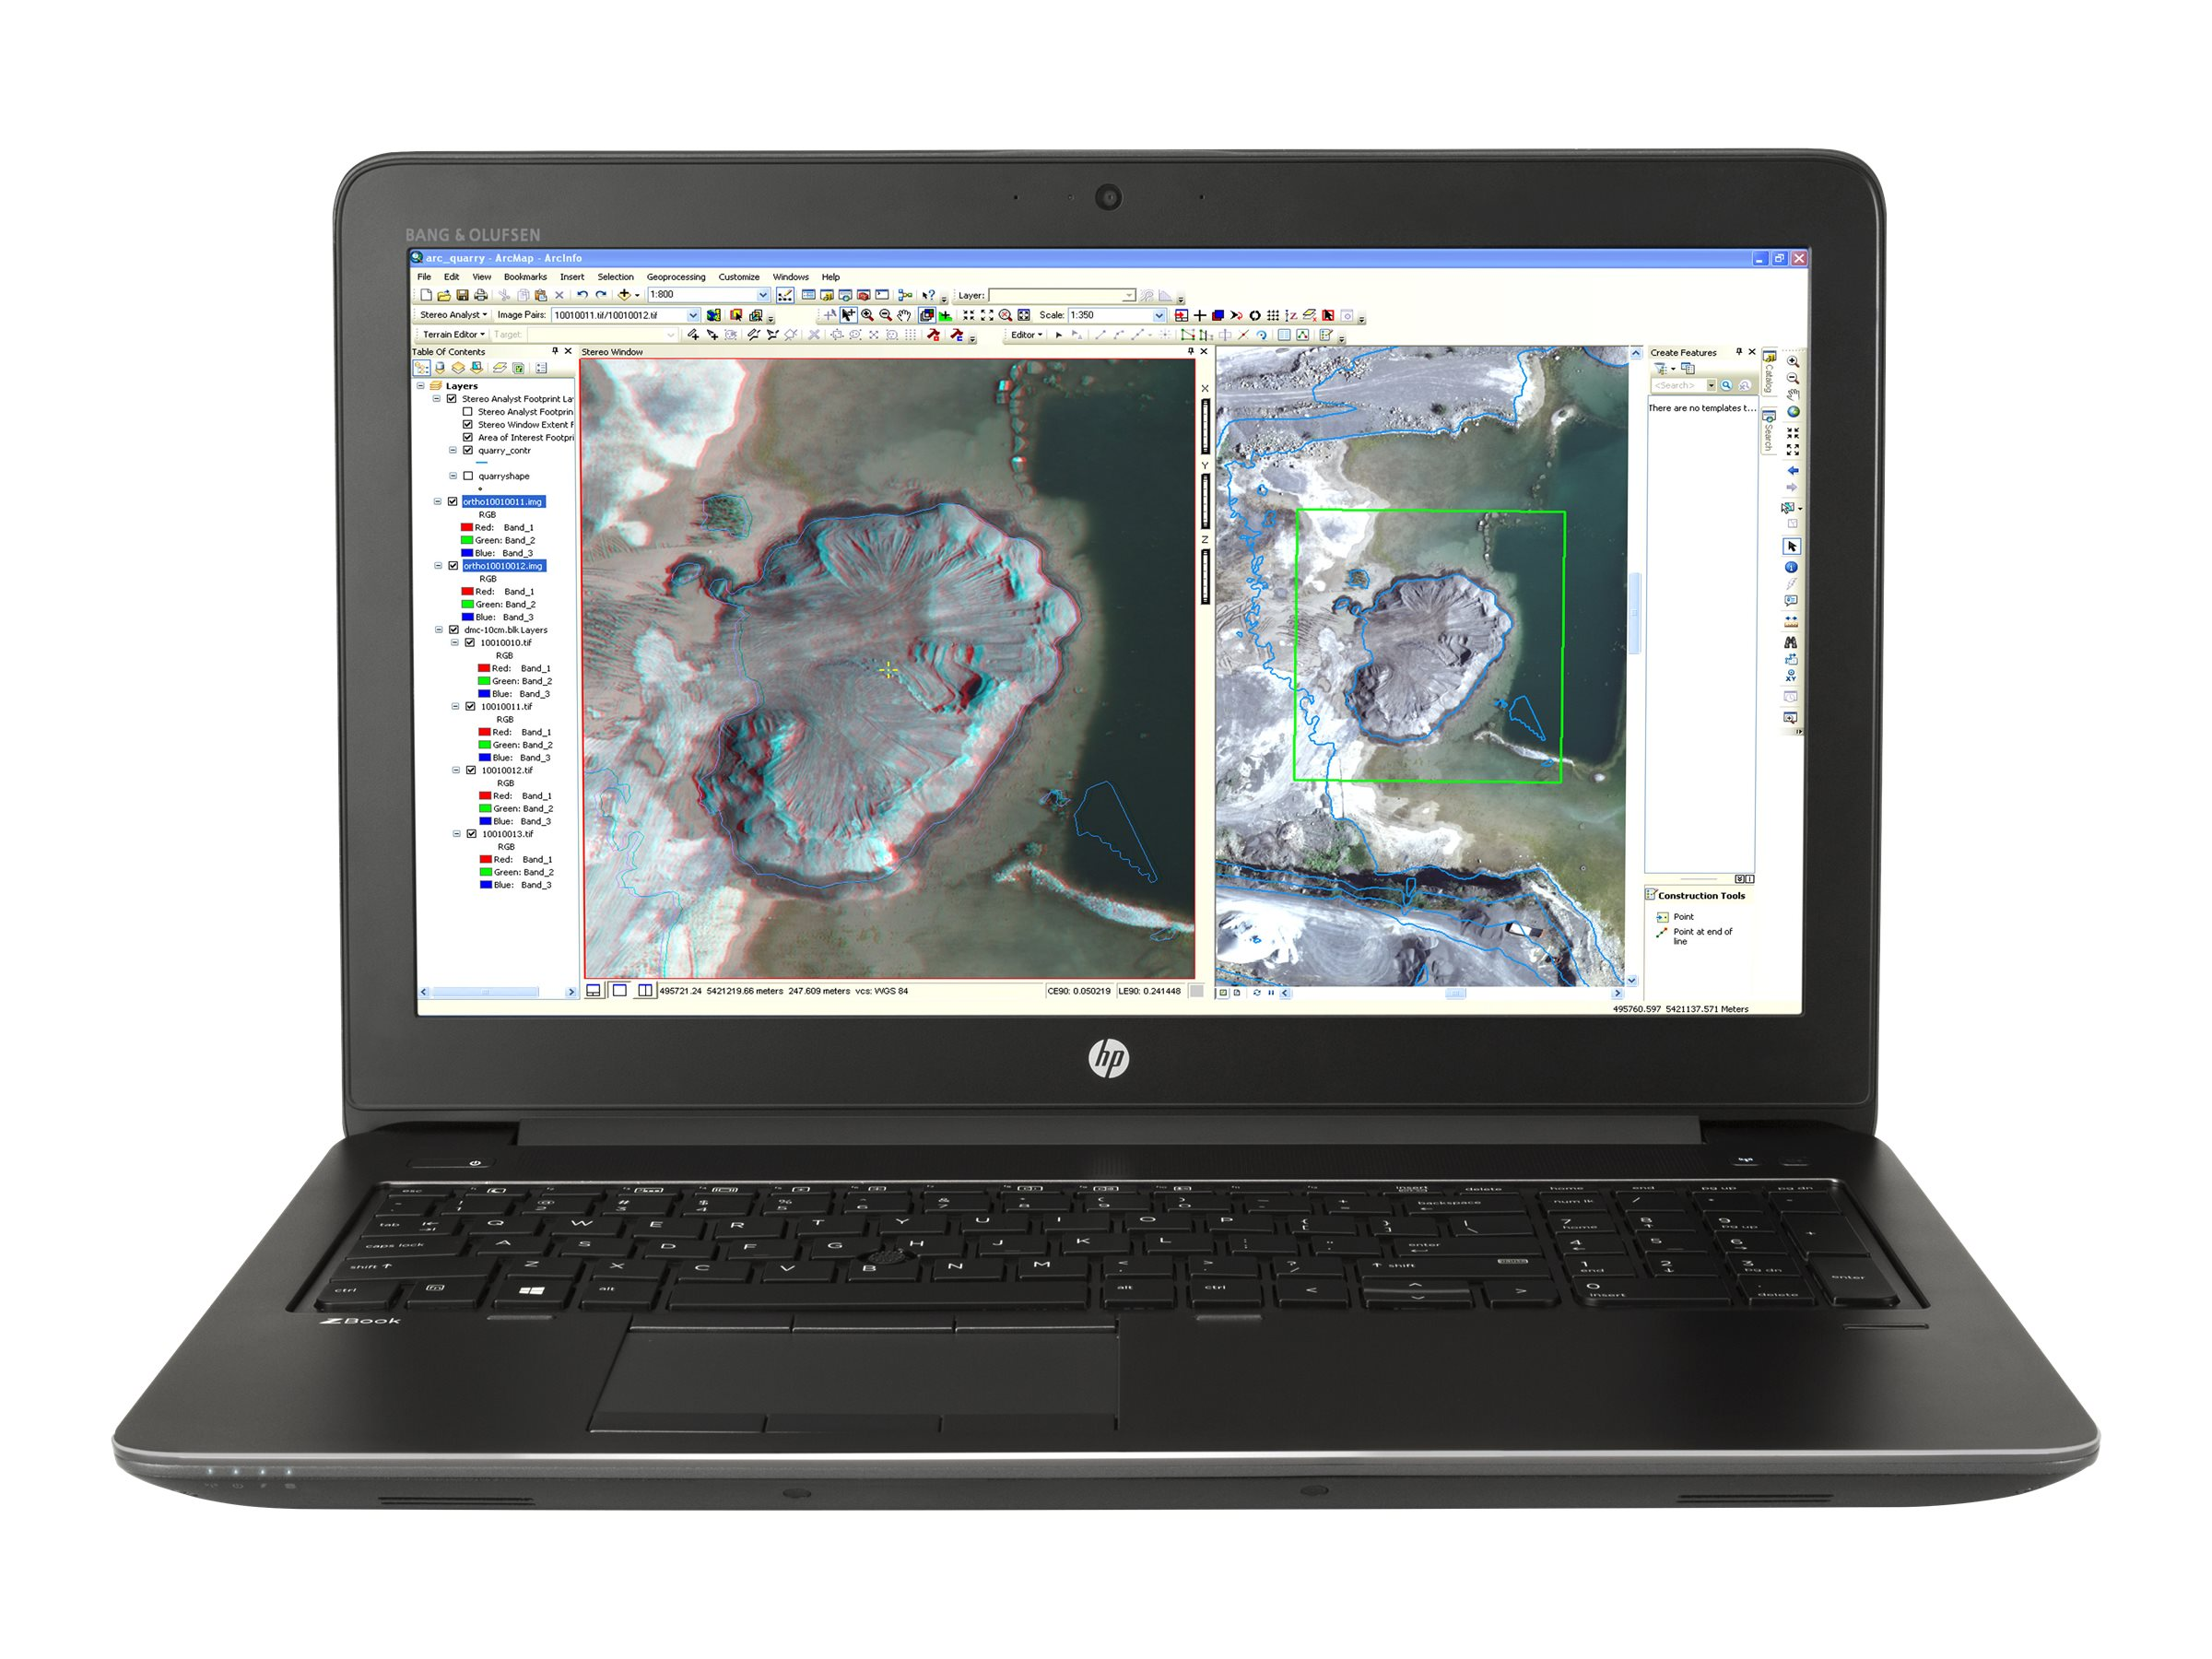 HP ZBook 15 G3 Core i7-6700HQ 2.6GHz 8GB 256GB ac BT FR WC 9C W5170M 15.6 FHD W7P64-W10P, V2W07UT#ABA